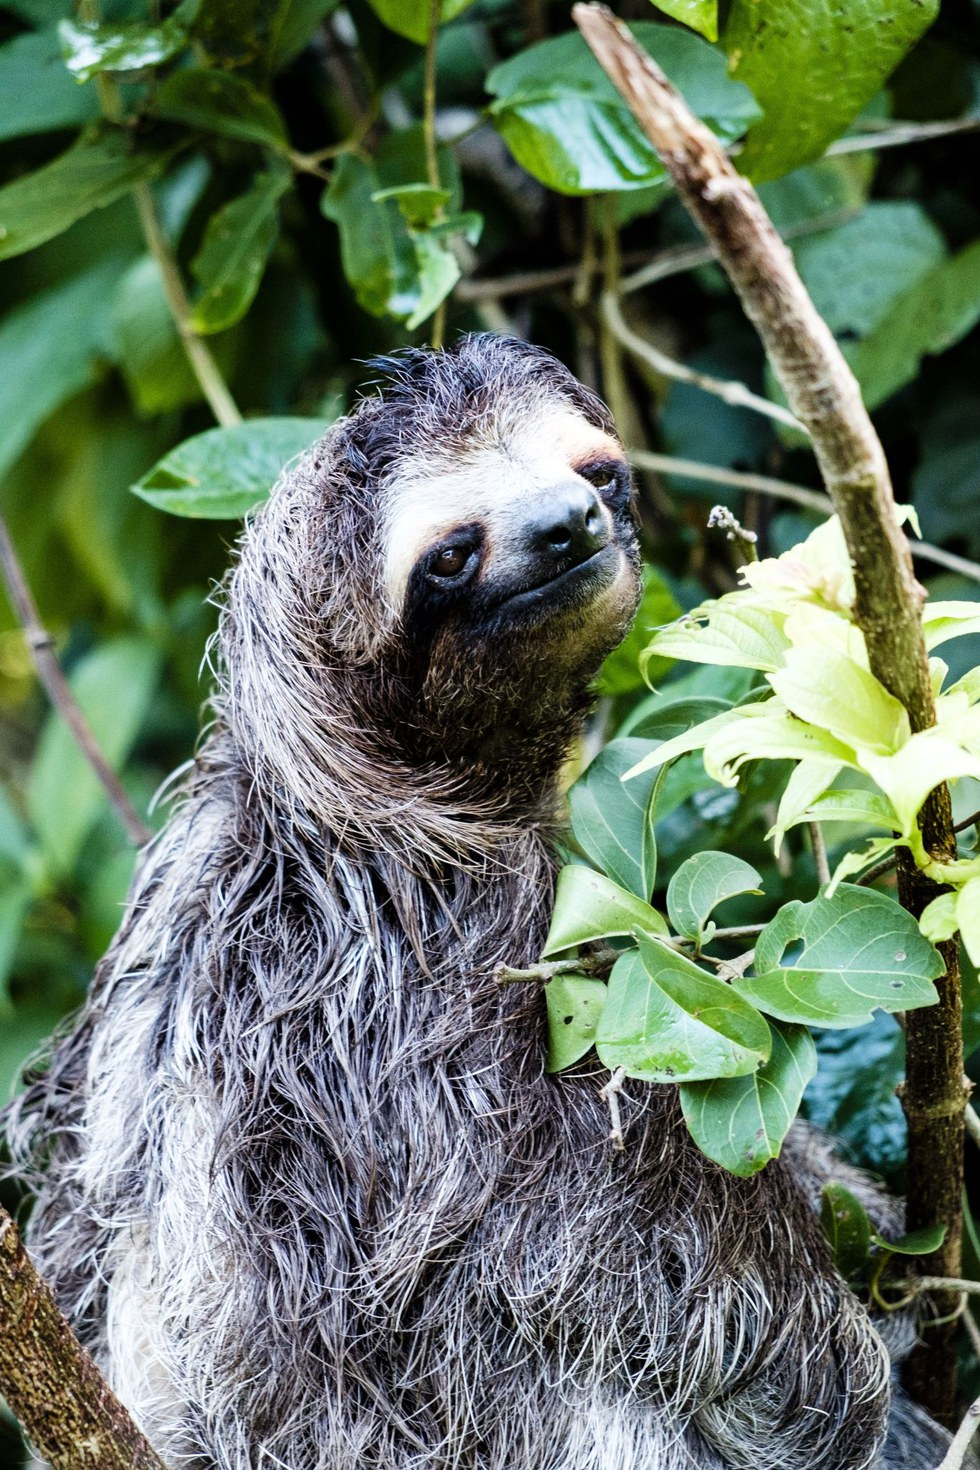 One of Parque Natural Metropolitano's slothful residents